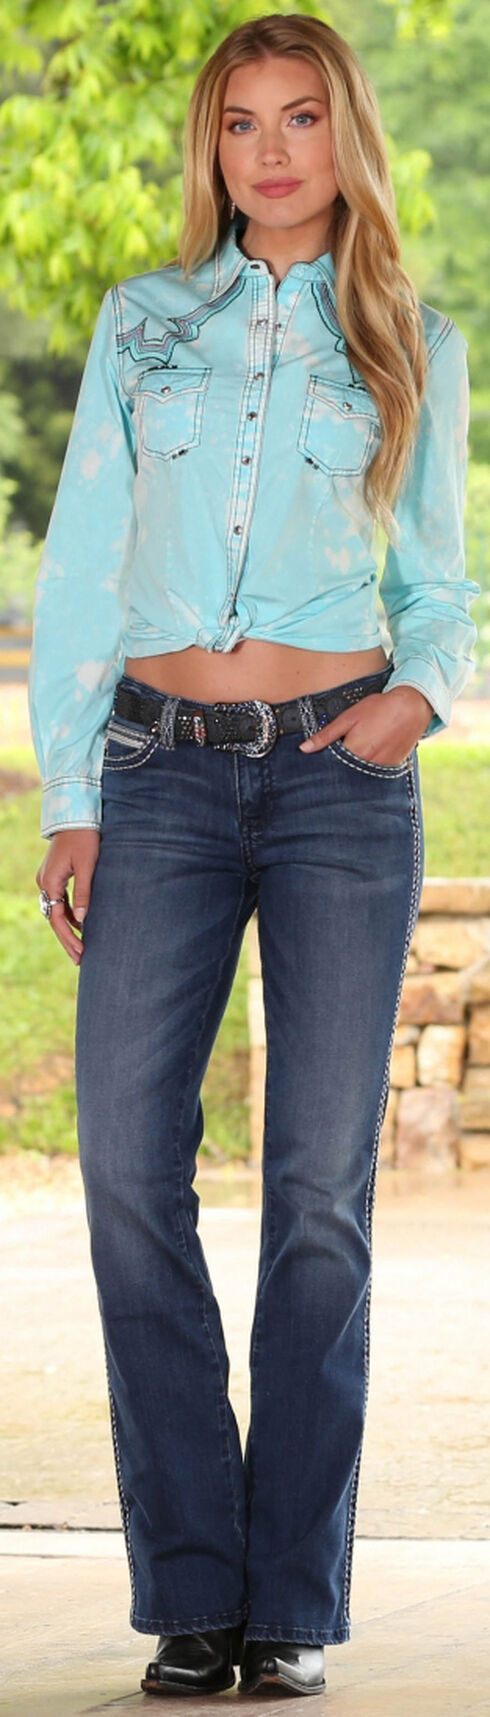 Wrangler Women's Rock 47 Turquoise Embroidered Fancy Yokes Solid Top, Turquoise, hi-res